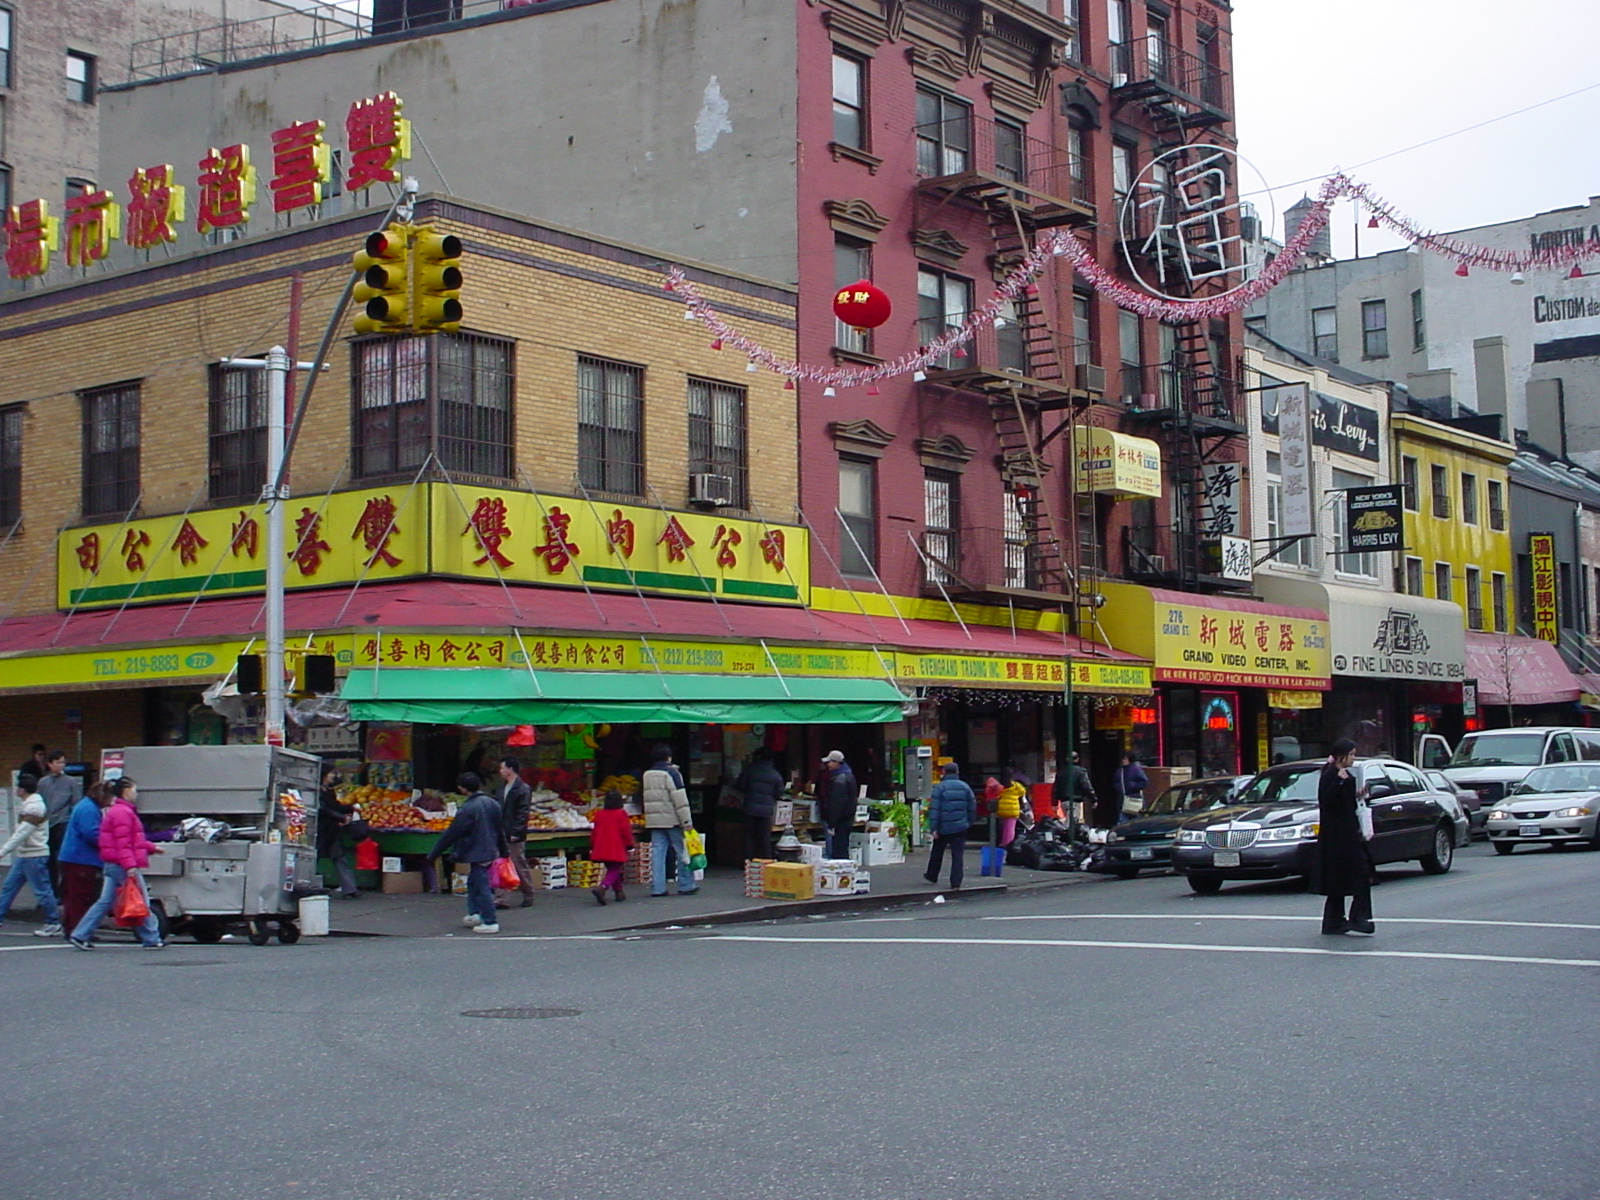 Lower Manhattan, the most widely known Chinatown in NYC.